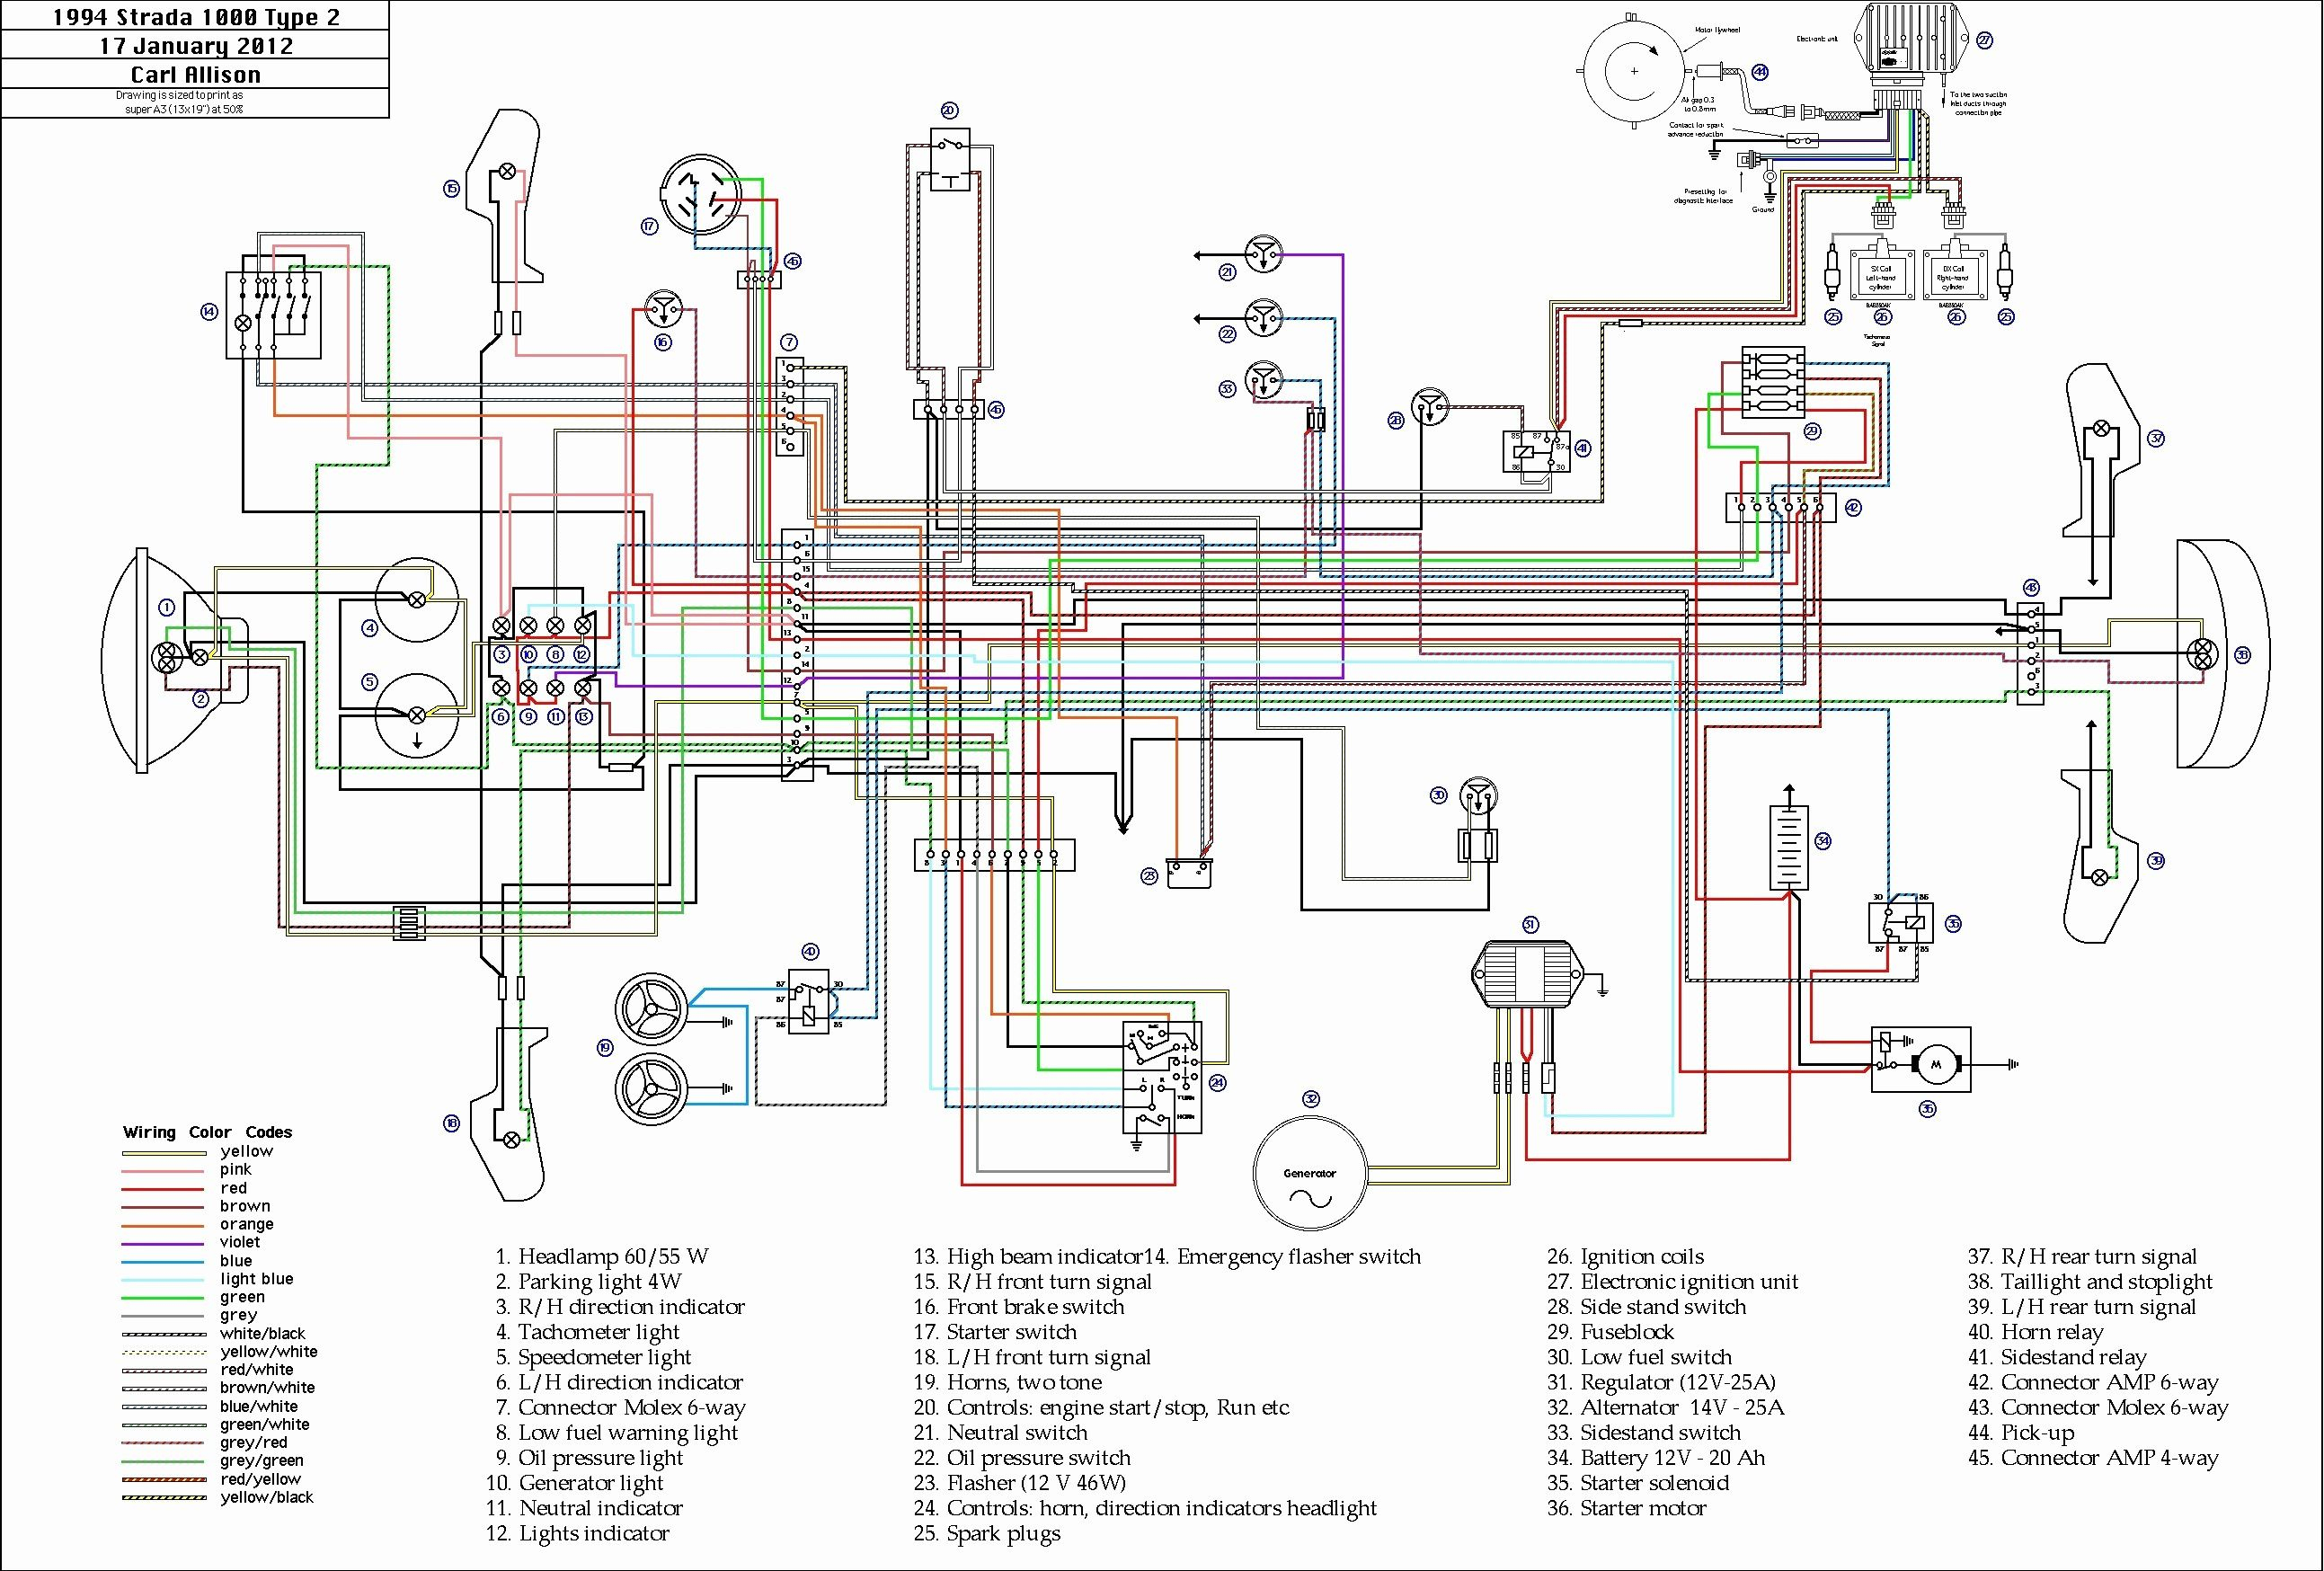 6 Volt Buick Generator Voltage Regulator Wiring Diagram Unique Type - 12 Volt Generator Voltage Regulator Wiring Diagram